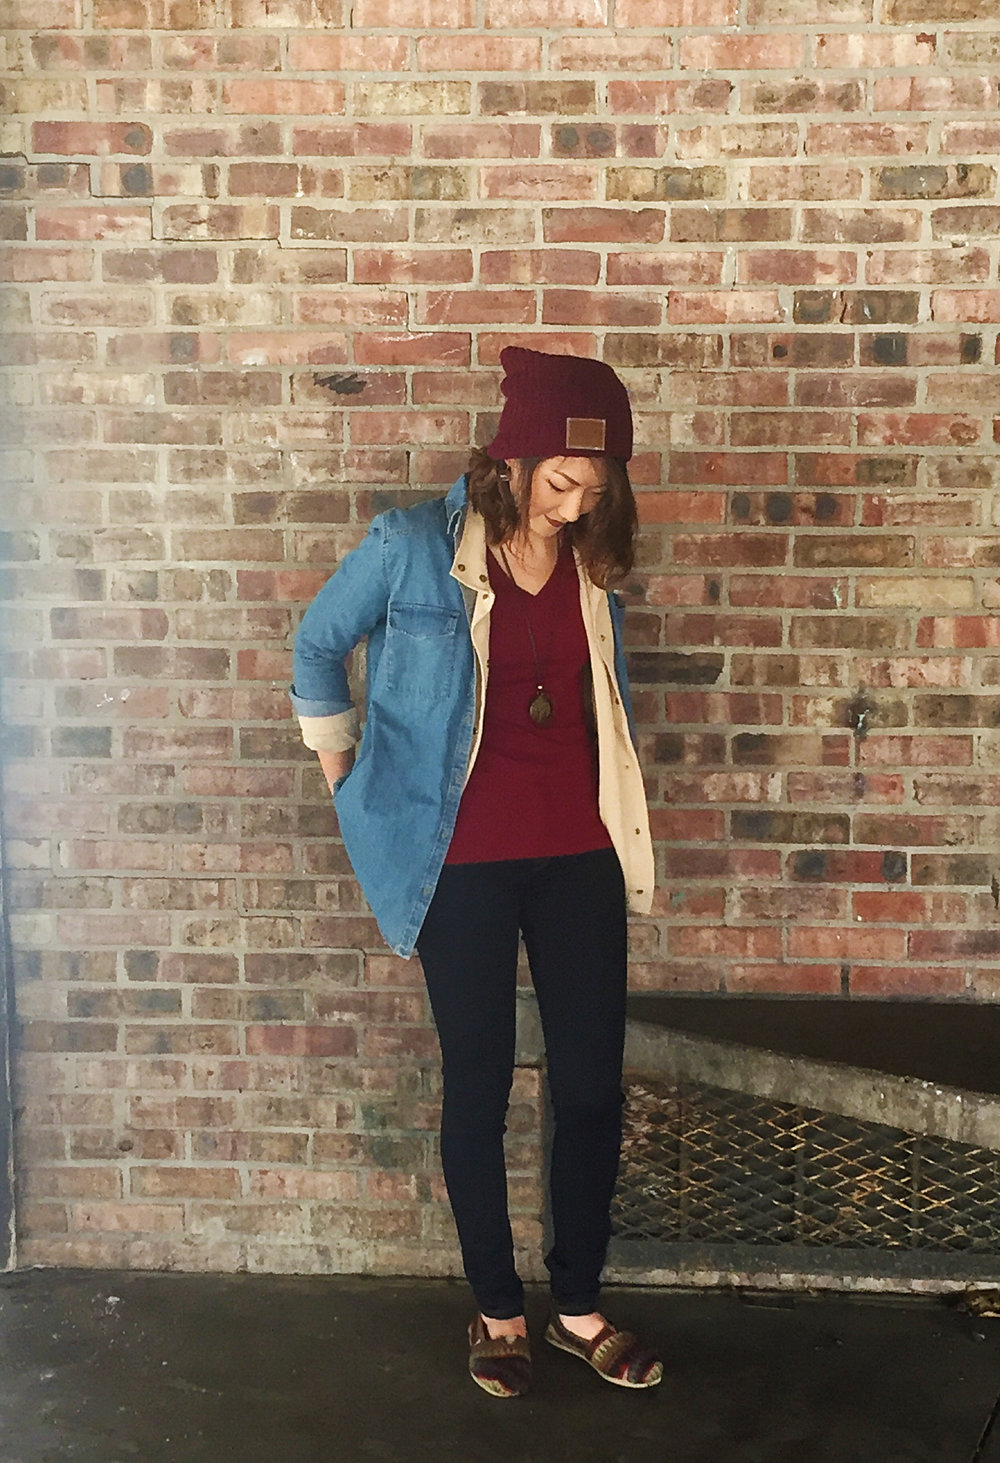 Jean Jacket: H&M / Beige Jacket: Zara / Beanie:  Love Your Melon  / Necklace:  StylebyKenlee  / Shoes: Toms / Lips:  Colour Pop in Frick N' Frack